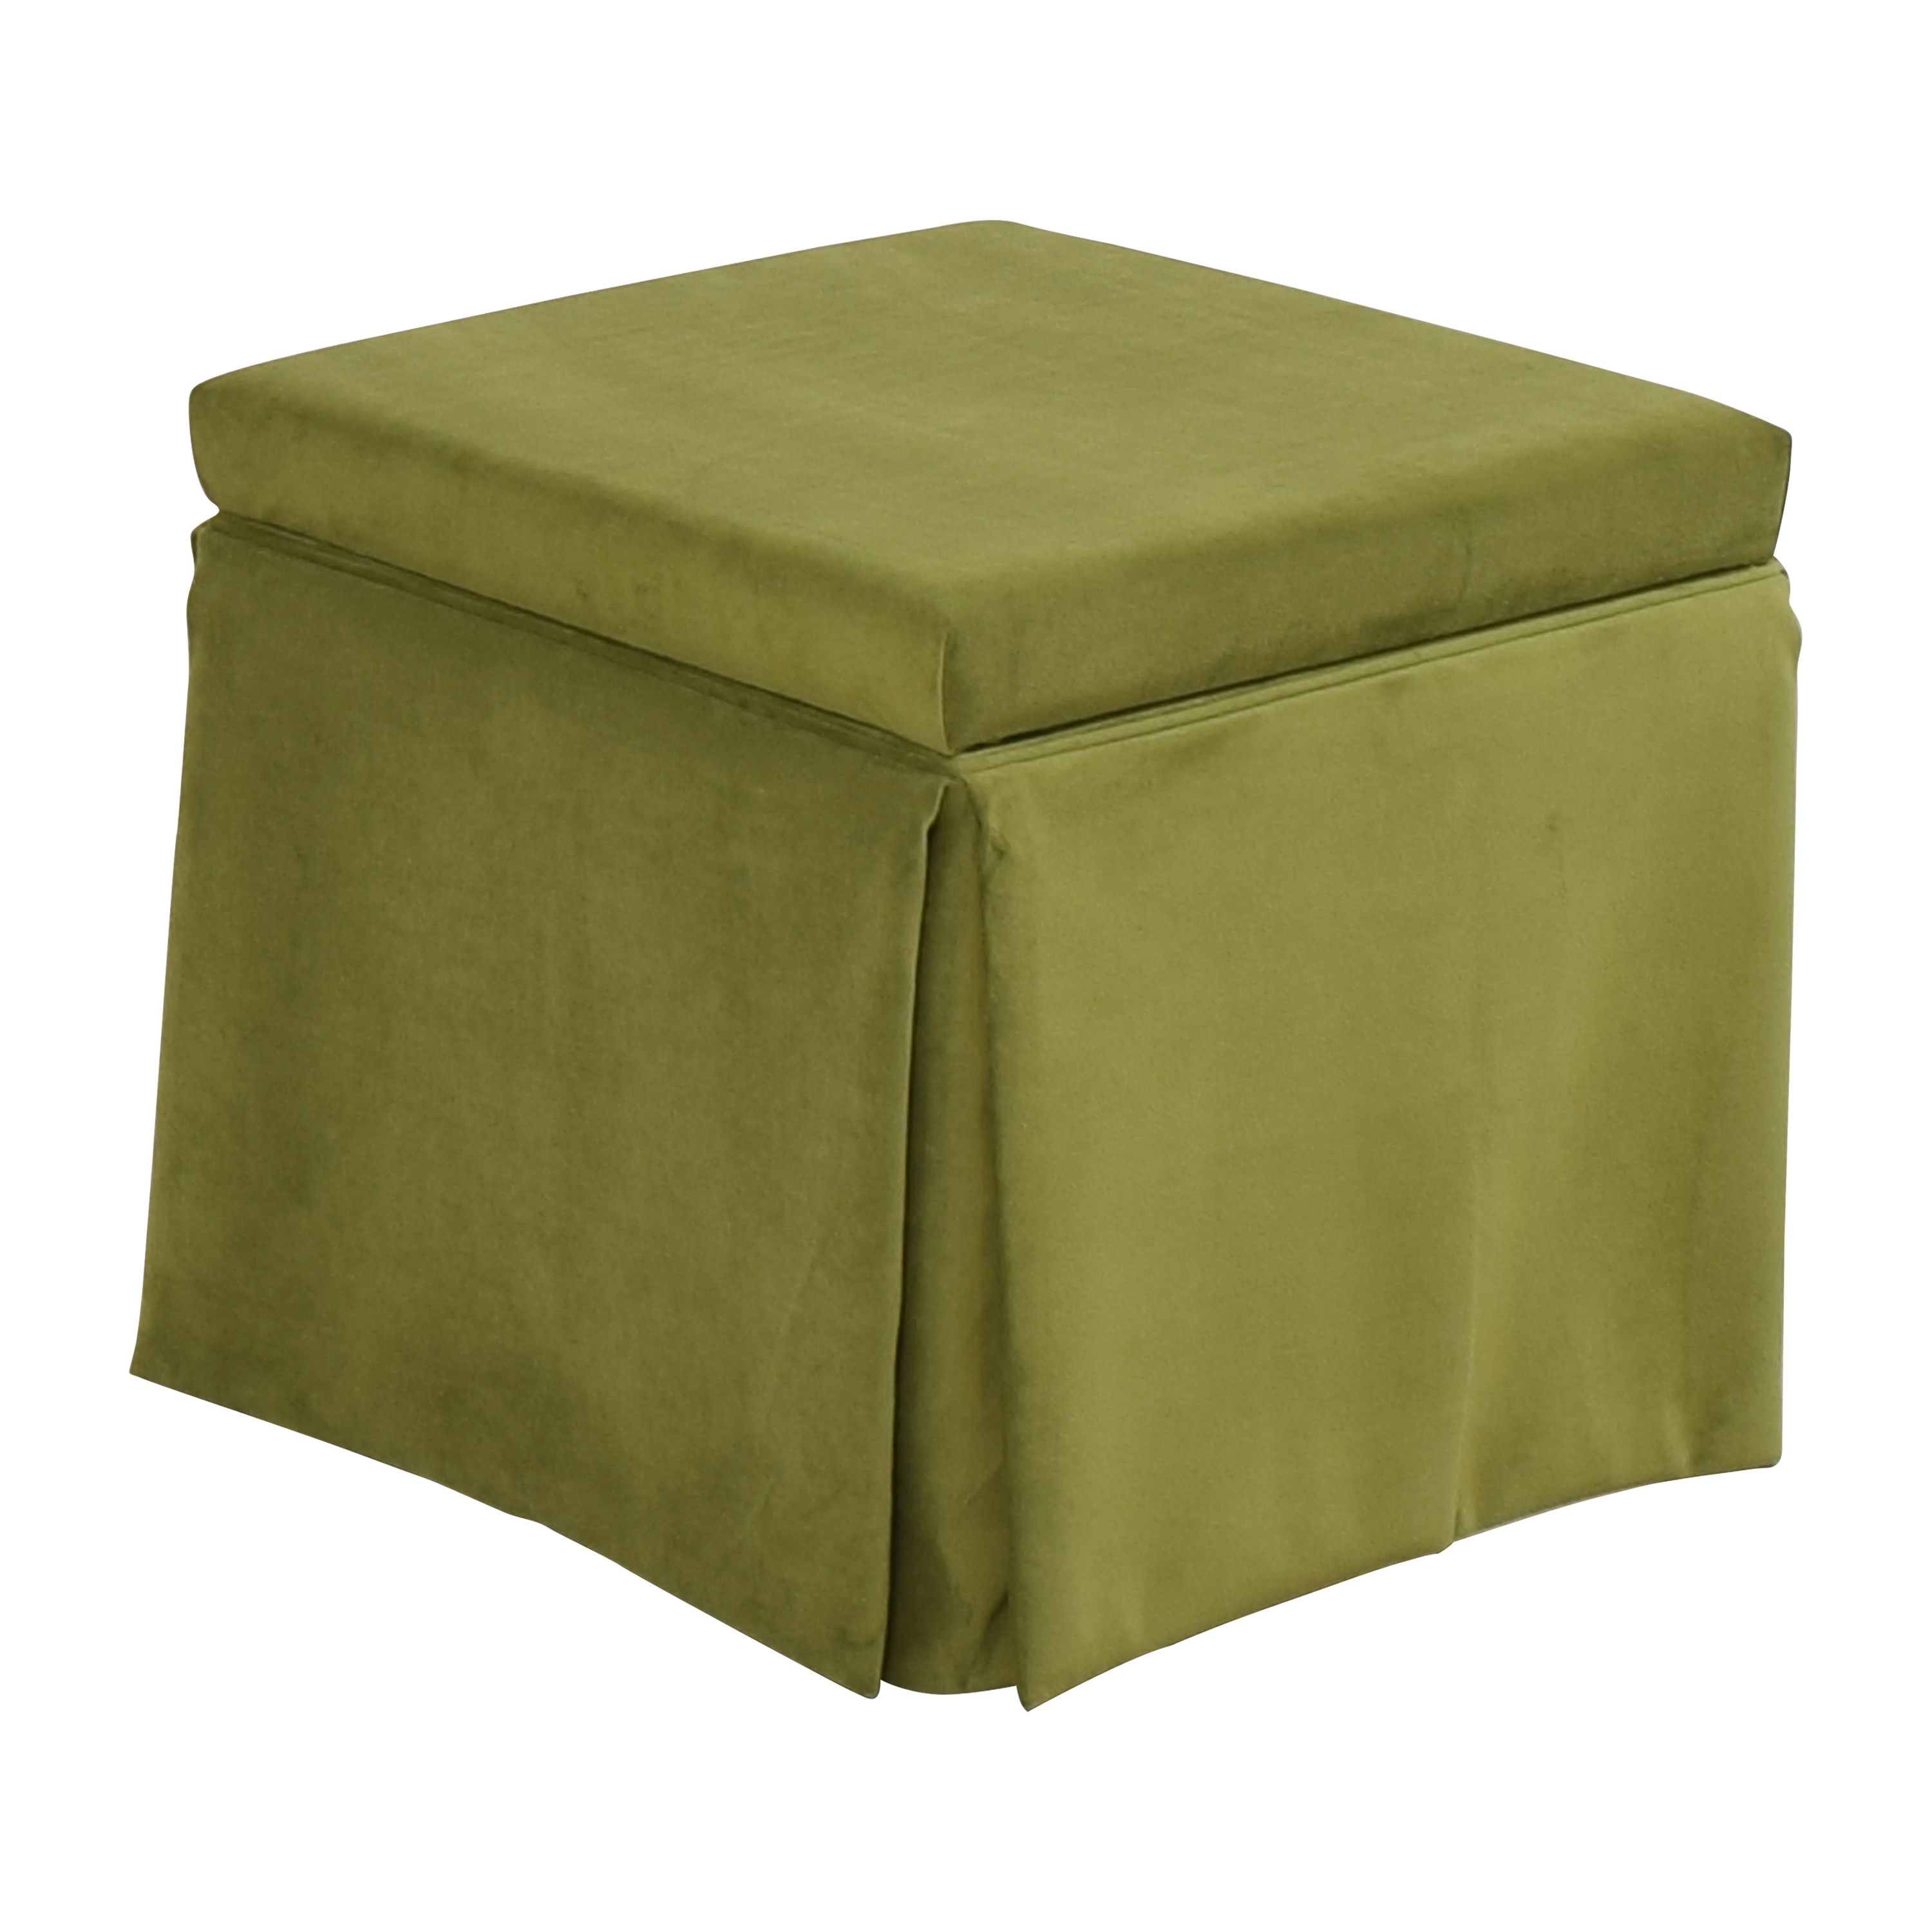 The Inside The Inside Skirted Storage Ottoman dimensions